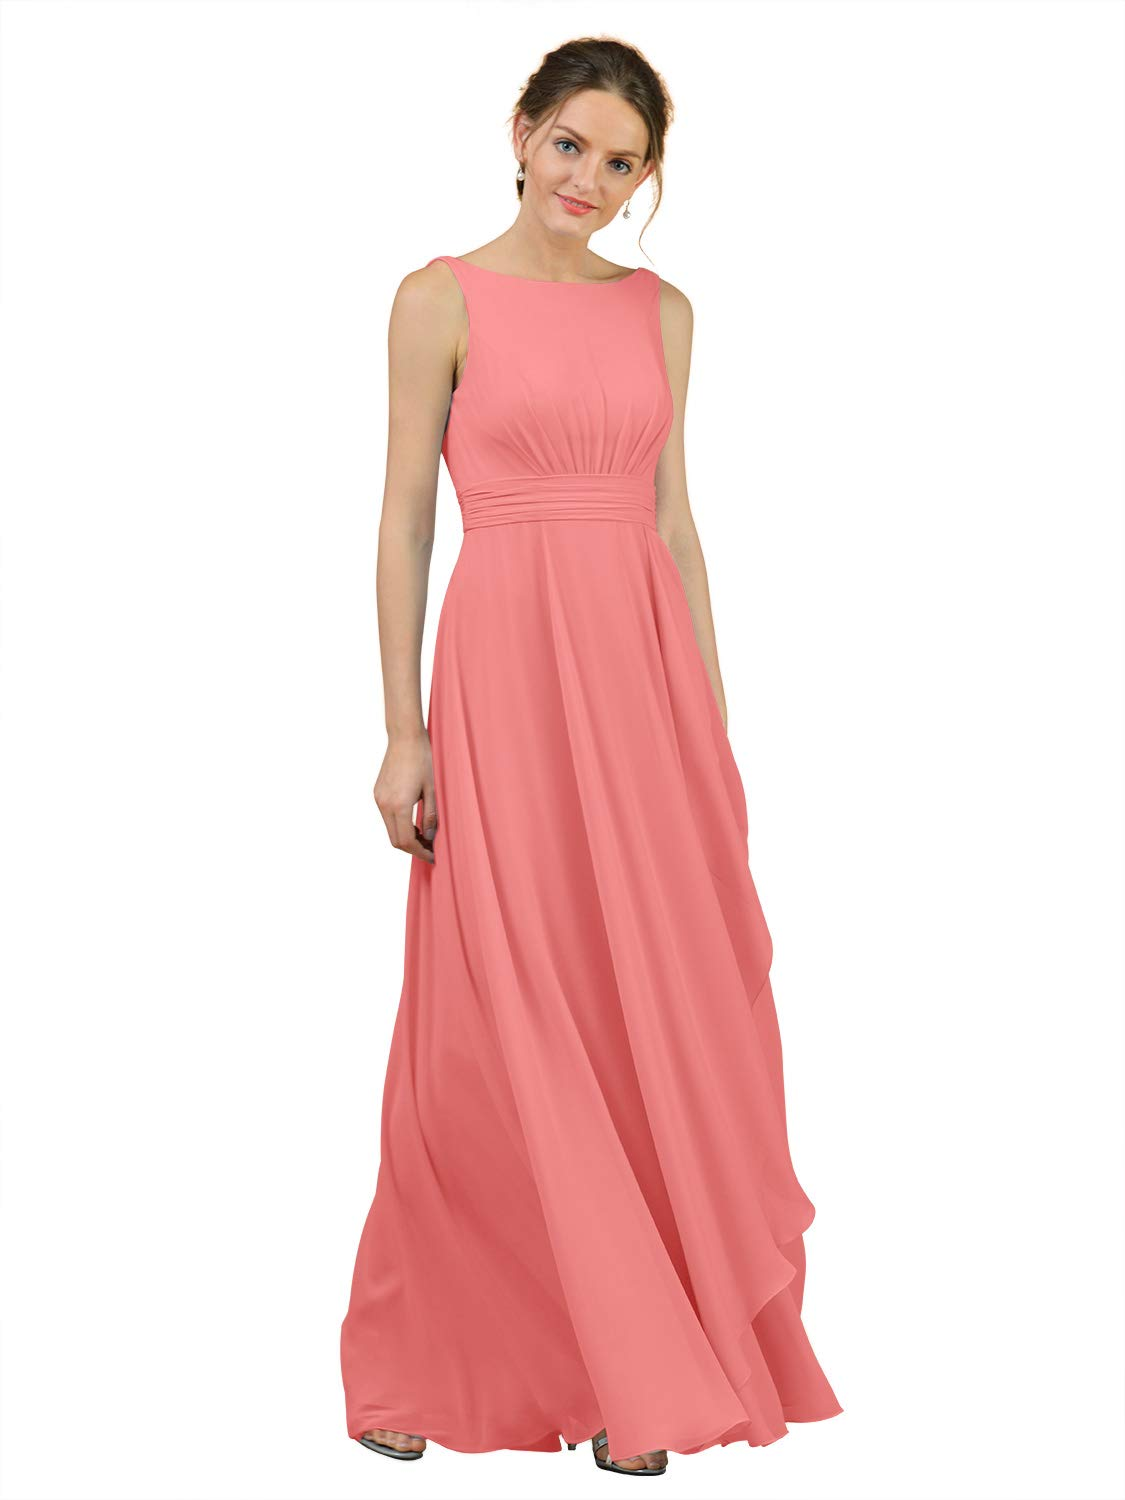 Alicepub Boat Neck Long Bridesmaid Dresses Chiffon Formal Party Evening Dress for Women